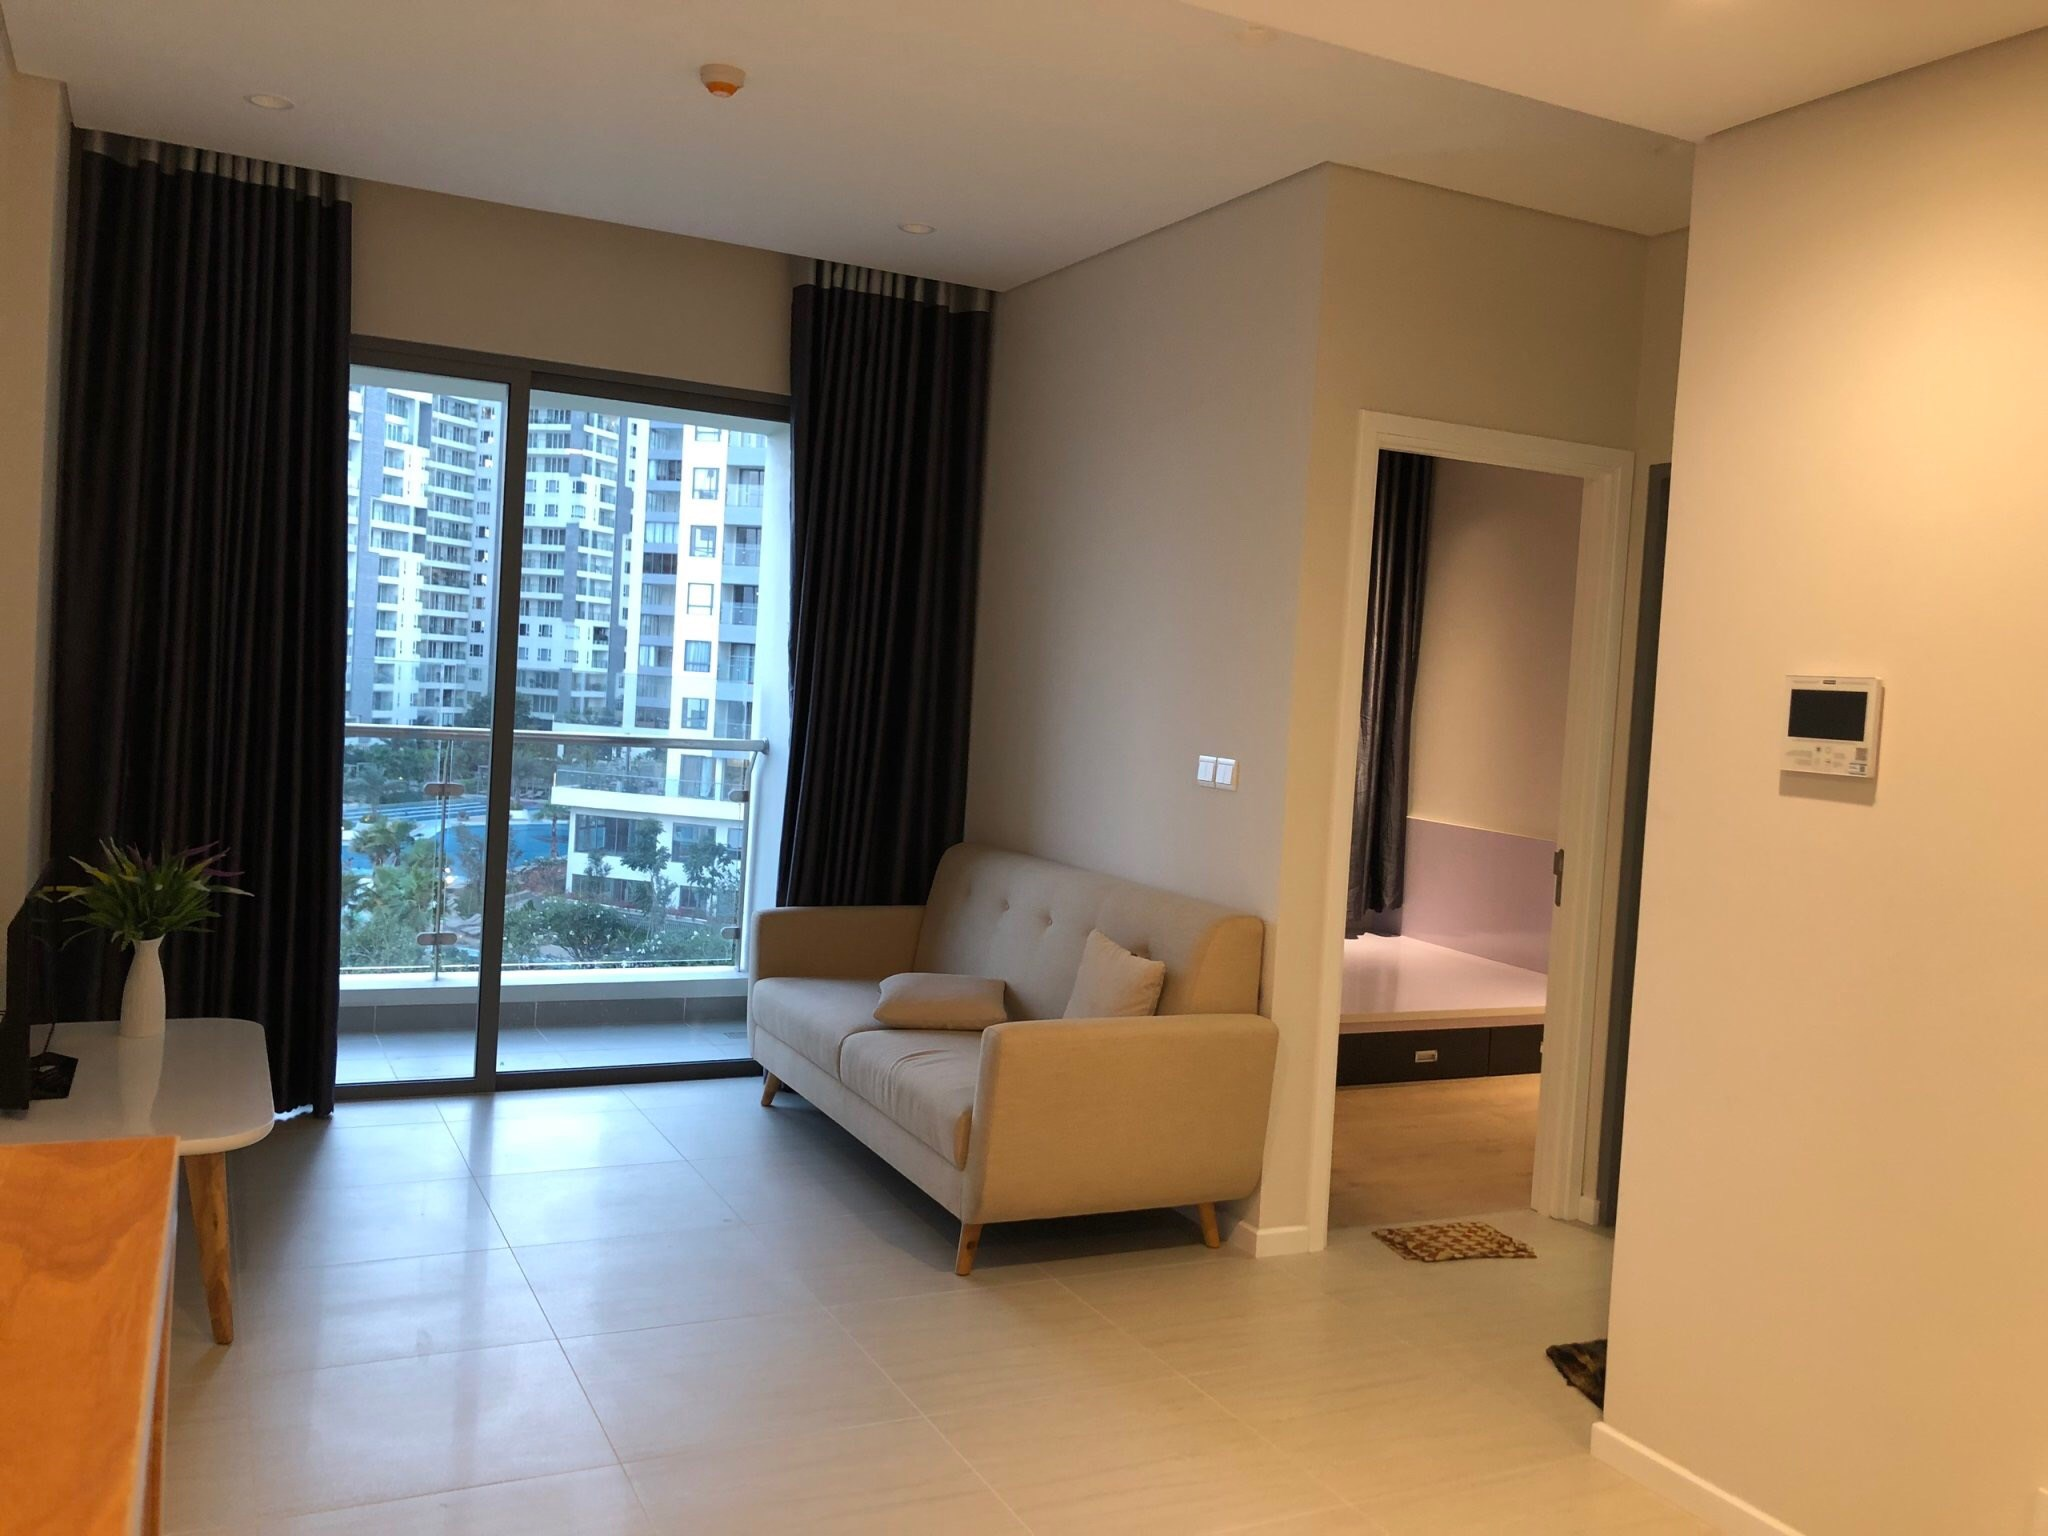 DI0894 - Diamond Island Apartment For Sale & Sale in Ho Chi Minh City - 1 bedroom